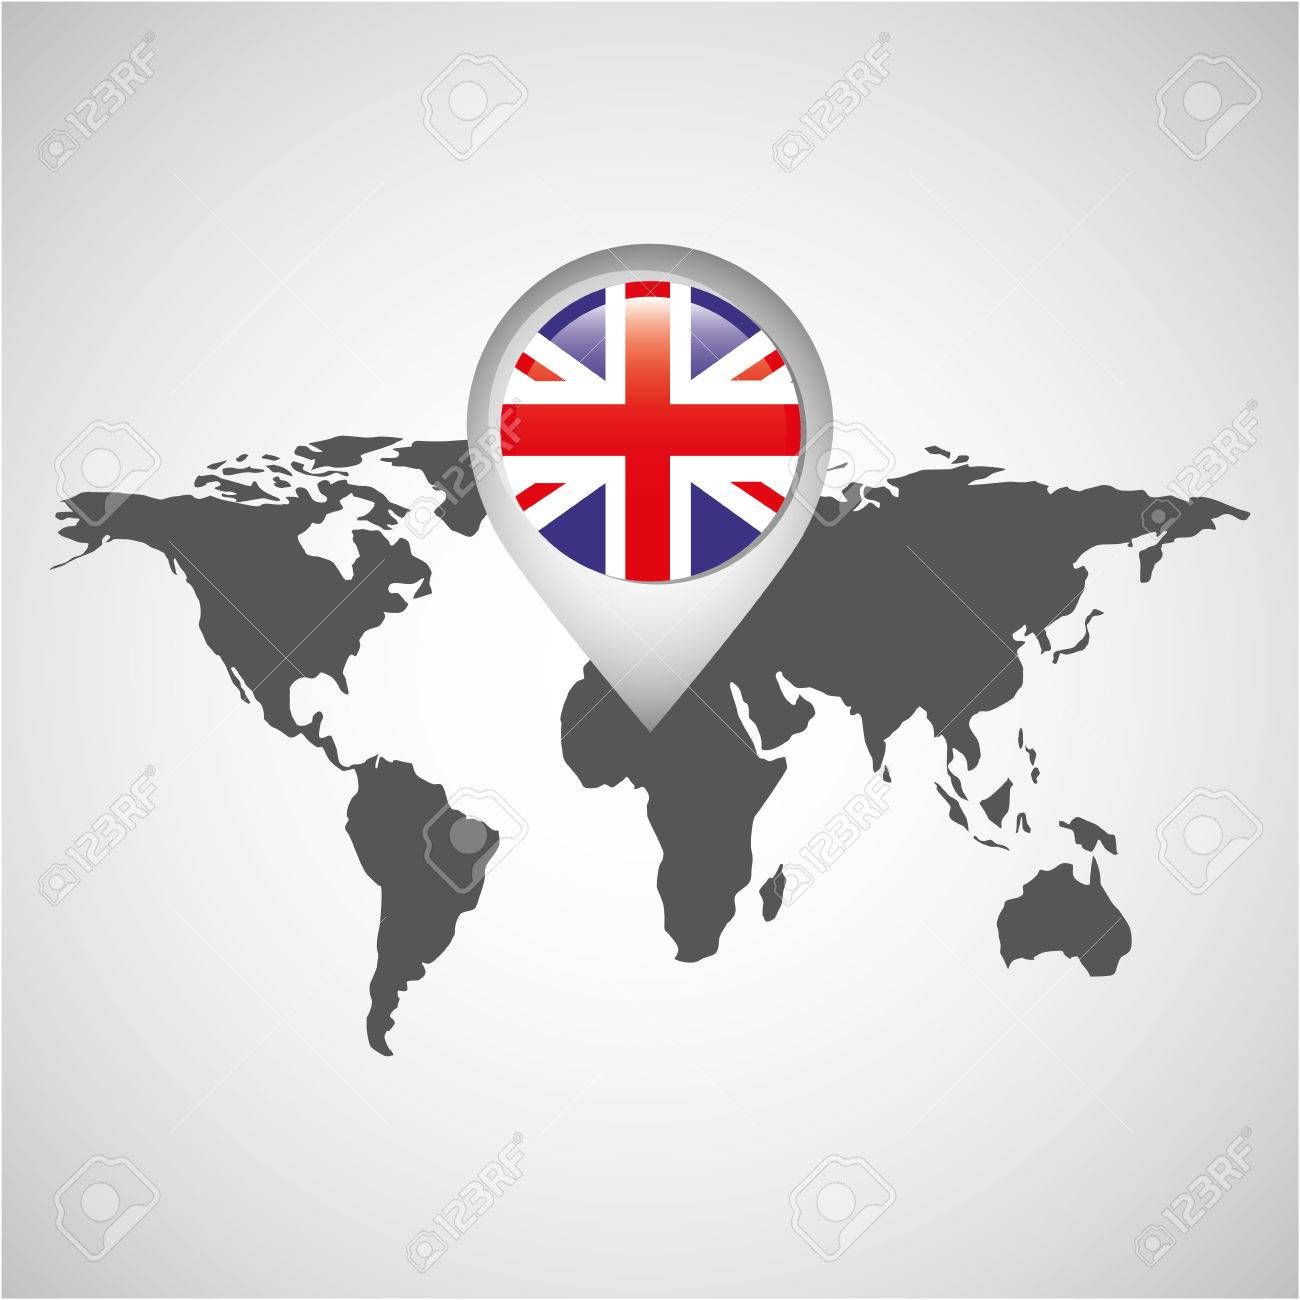 World Map With Pointer Flag England Vector Illustration Royalty Free ...